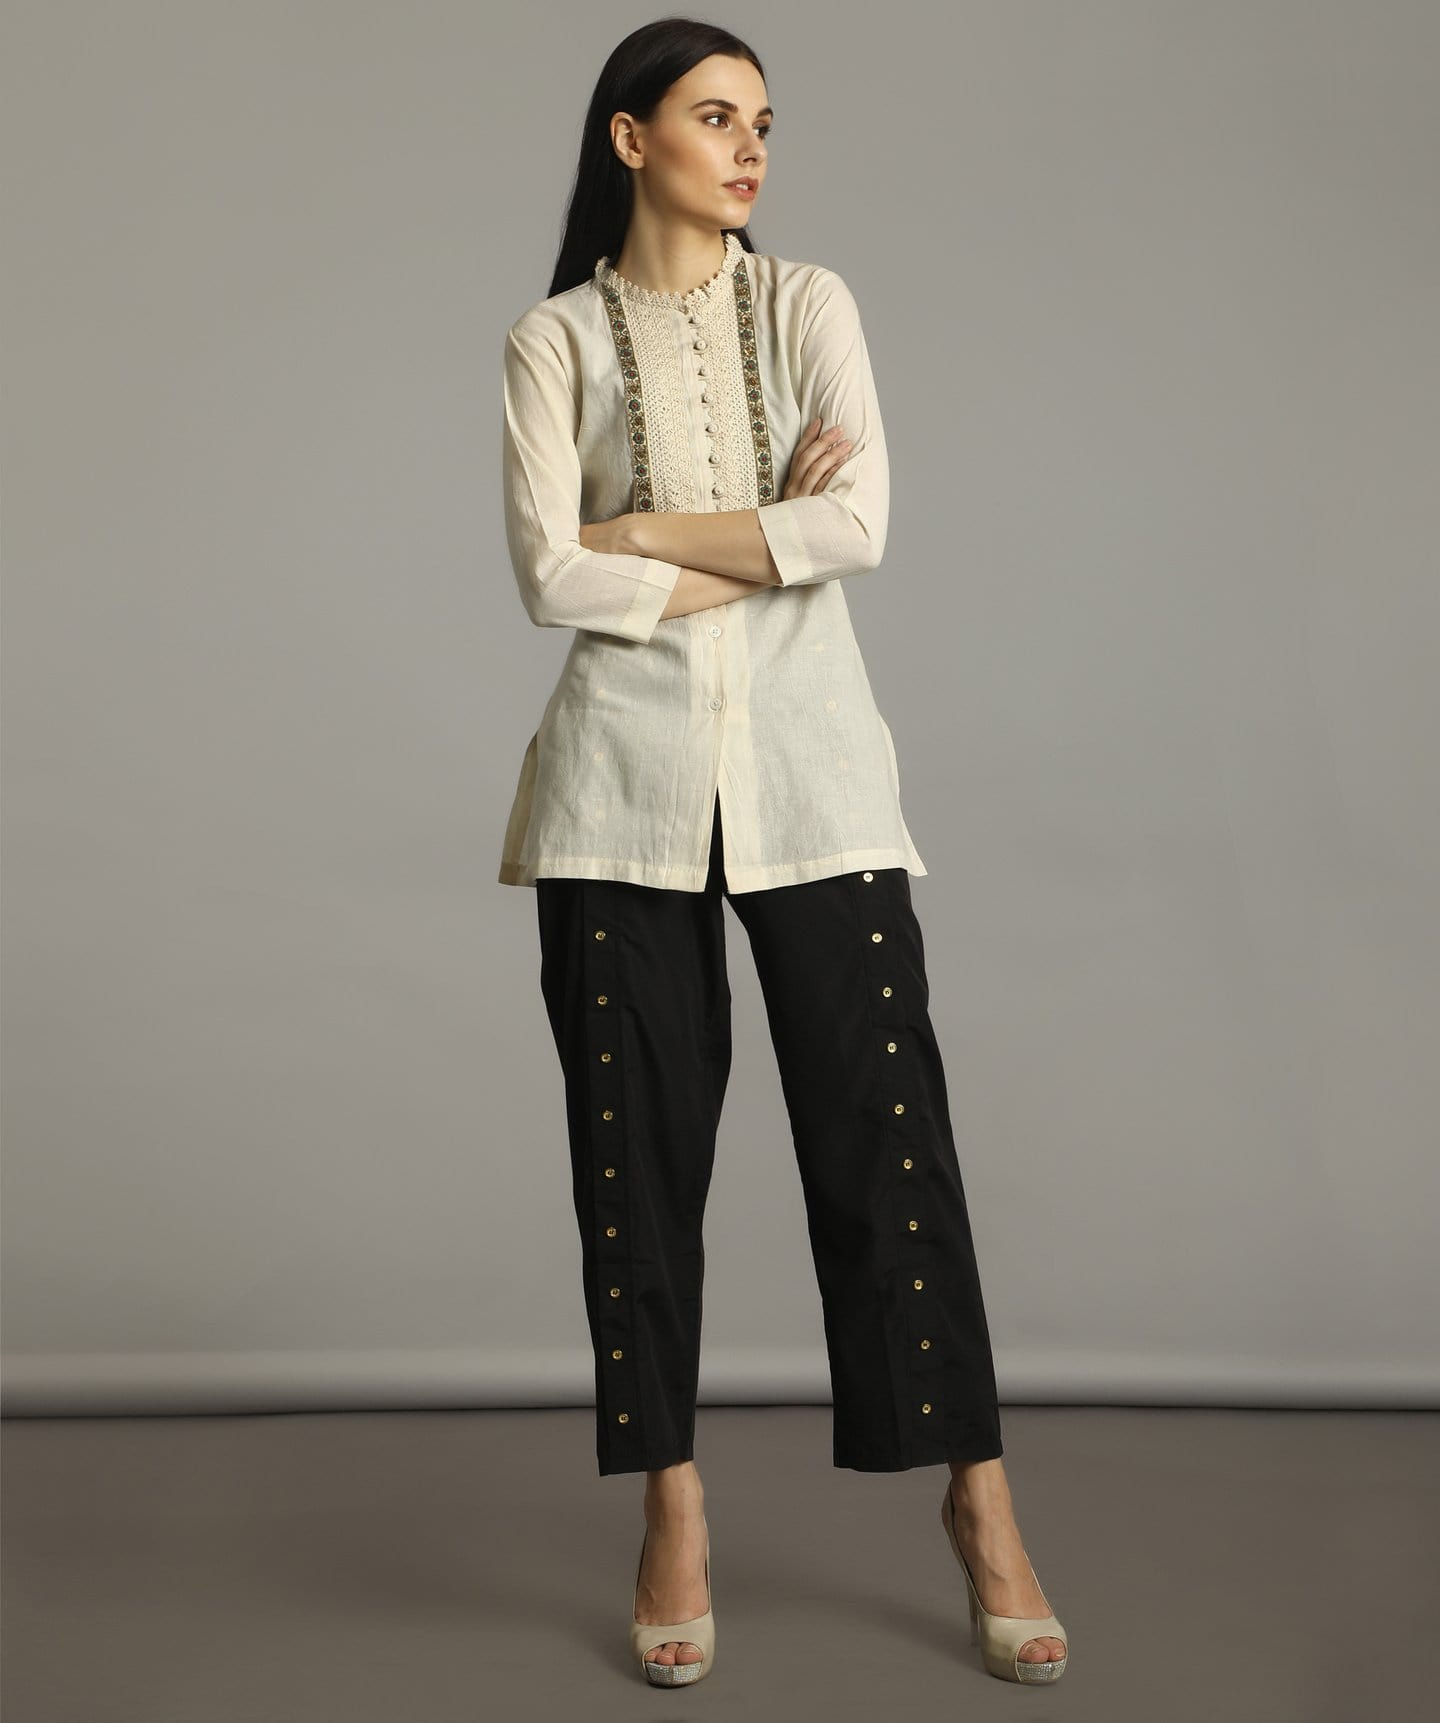 Uptownie Off-White Lacy Collar Tunic 1 trendsale